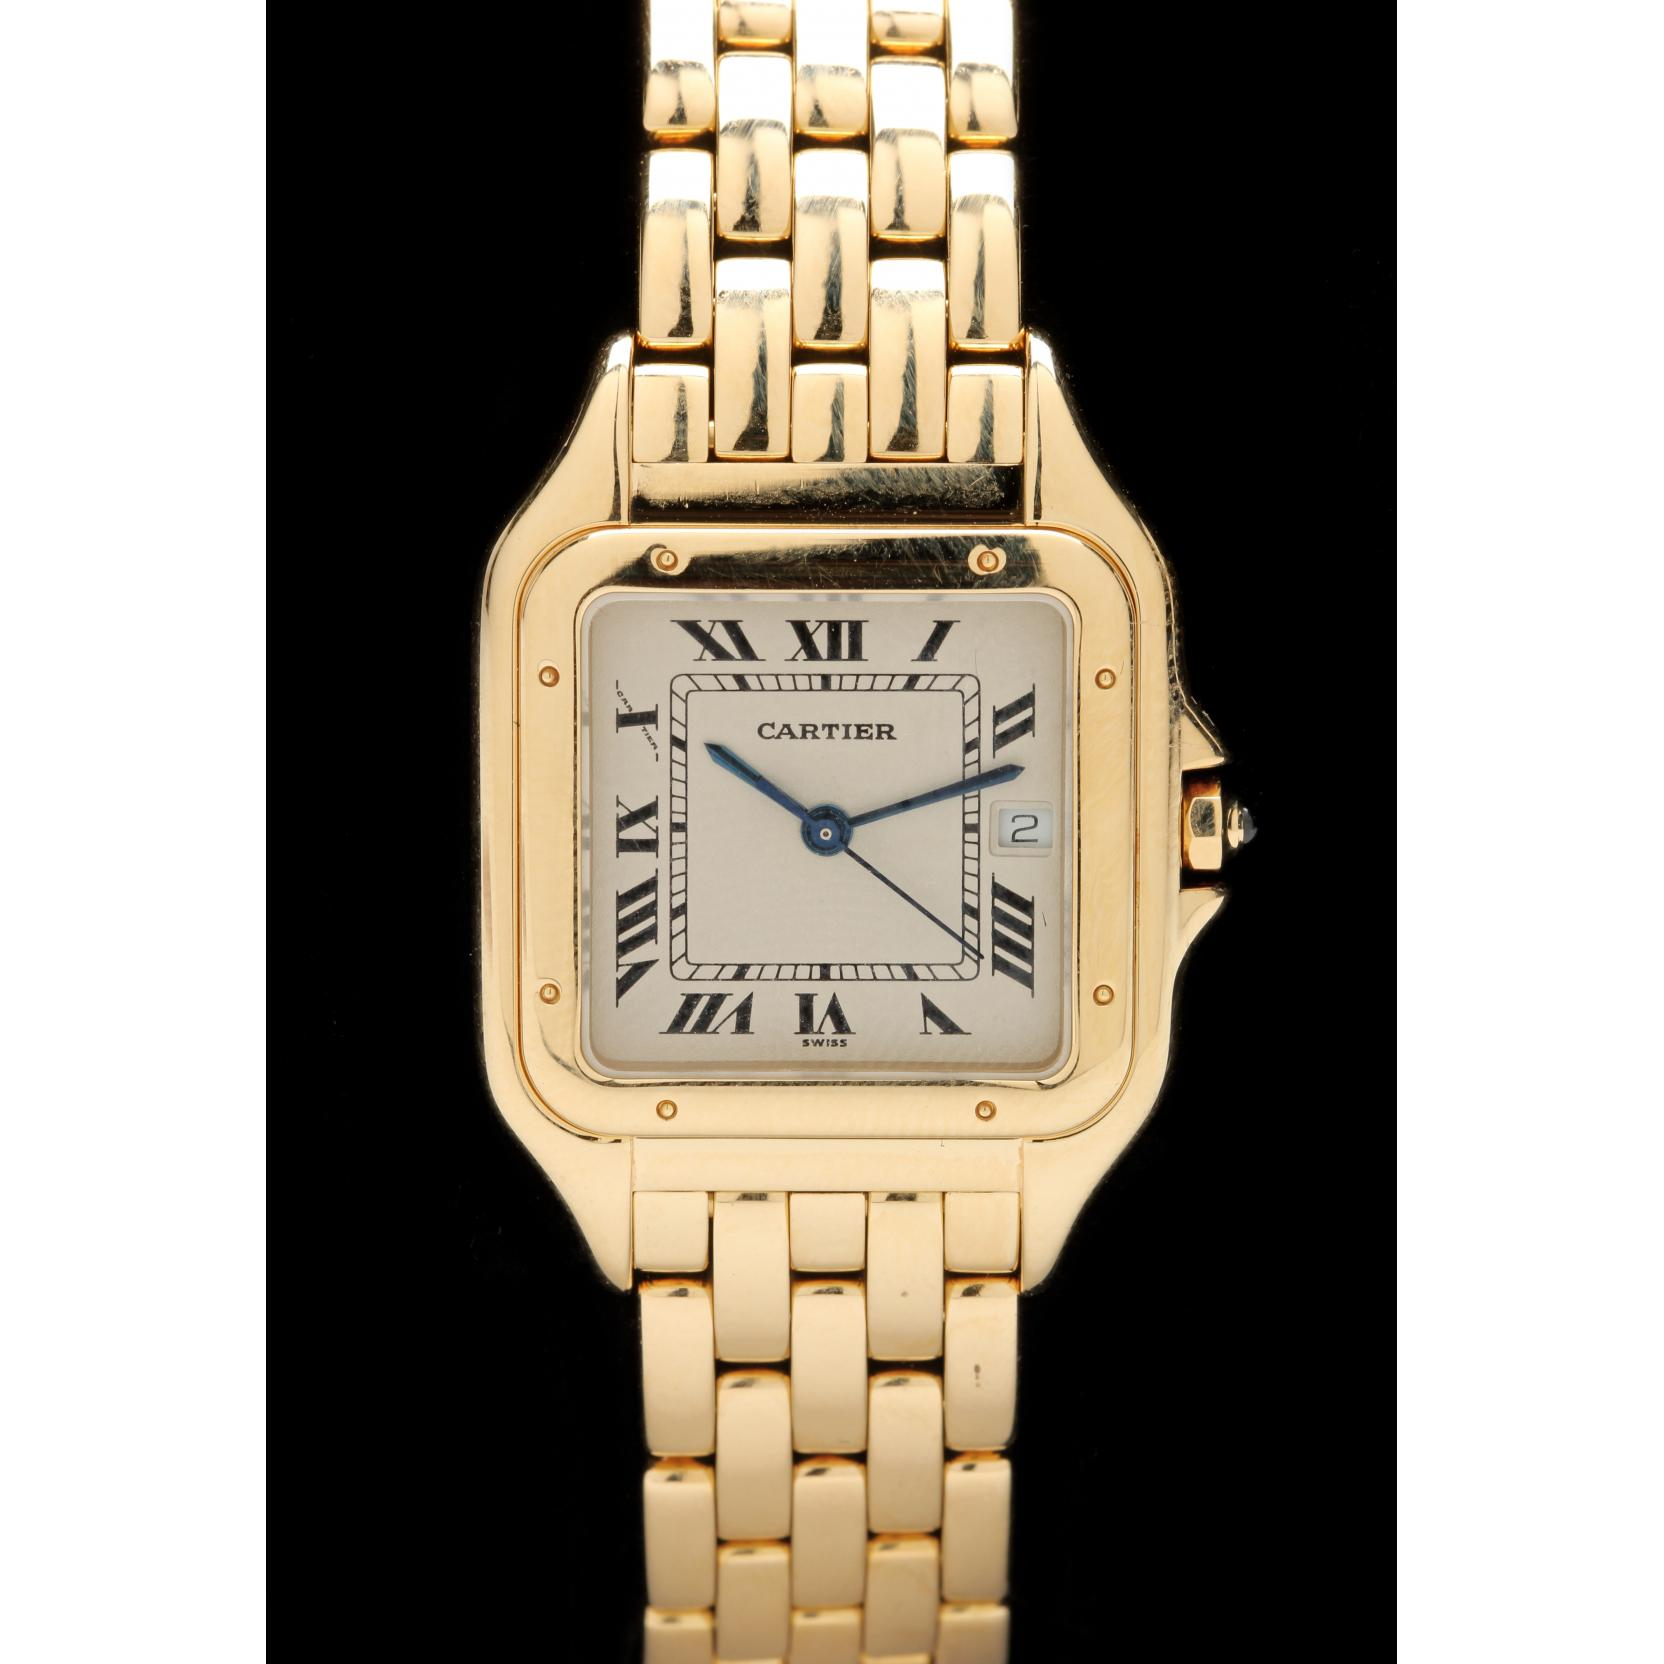 18kt-panthere-watch-cartier